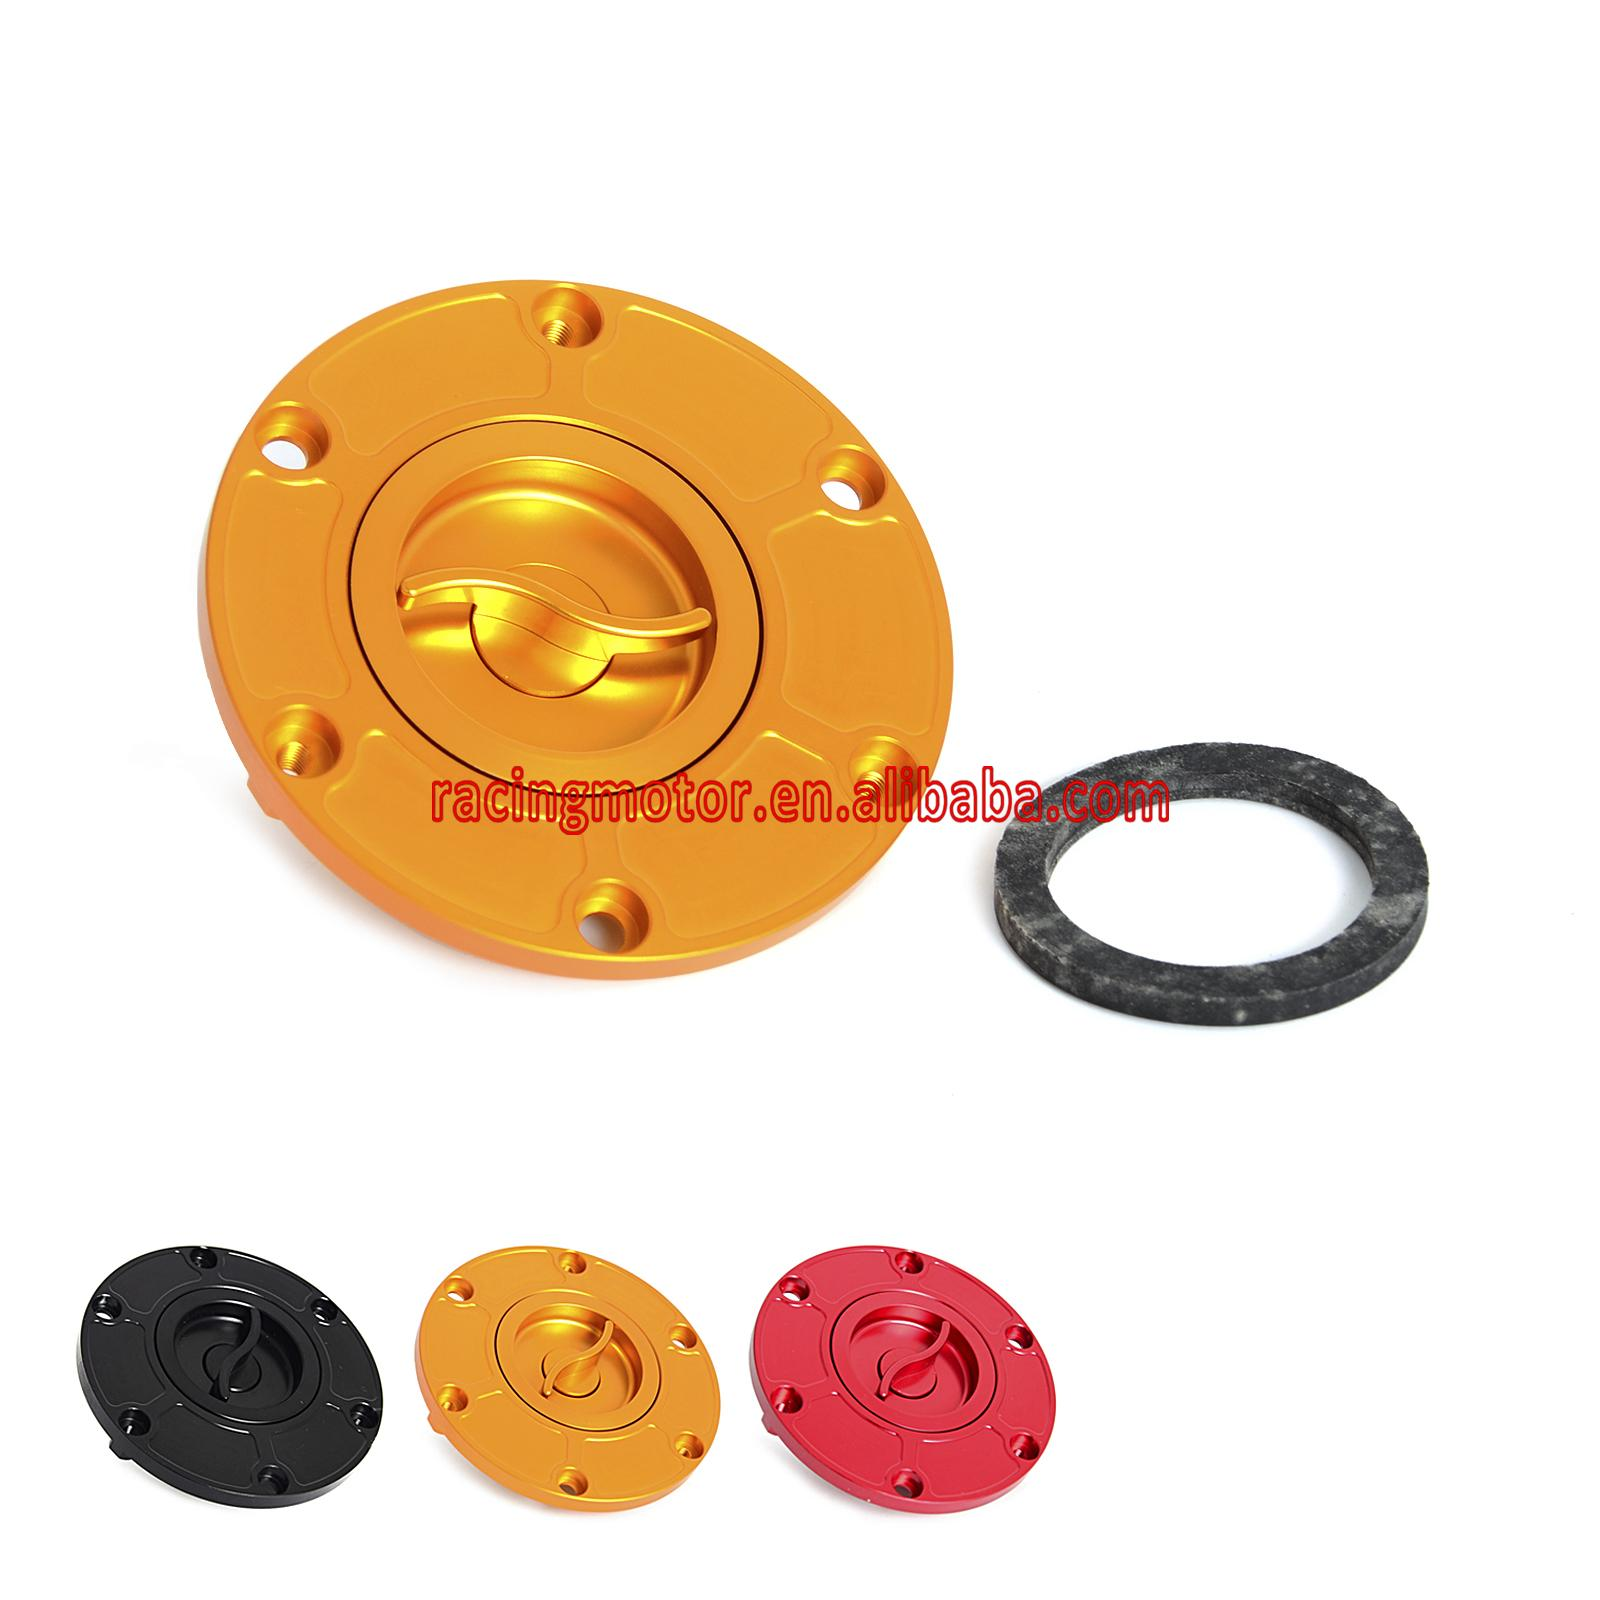 Aluminum Fuel Gas Cap Anodized Fit For Aprilia RSV1000 RSV 1000 1997 1998 1999 2000 2001 2002 2003 Tuono 1000 2002- 2005 aluminum water cool flange fits 26 29cc qj zenoah rcmk cy gas engine for rc boat